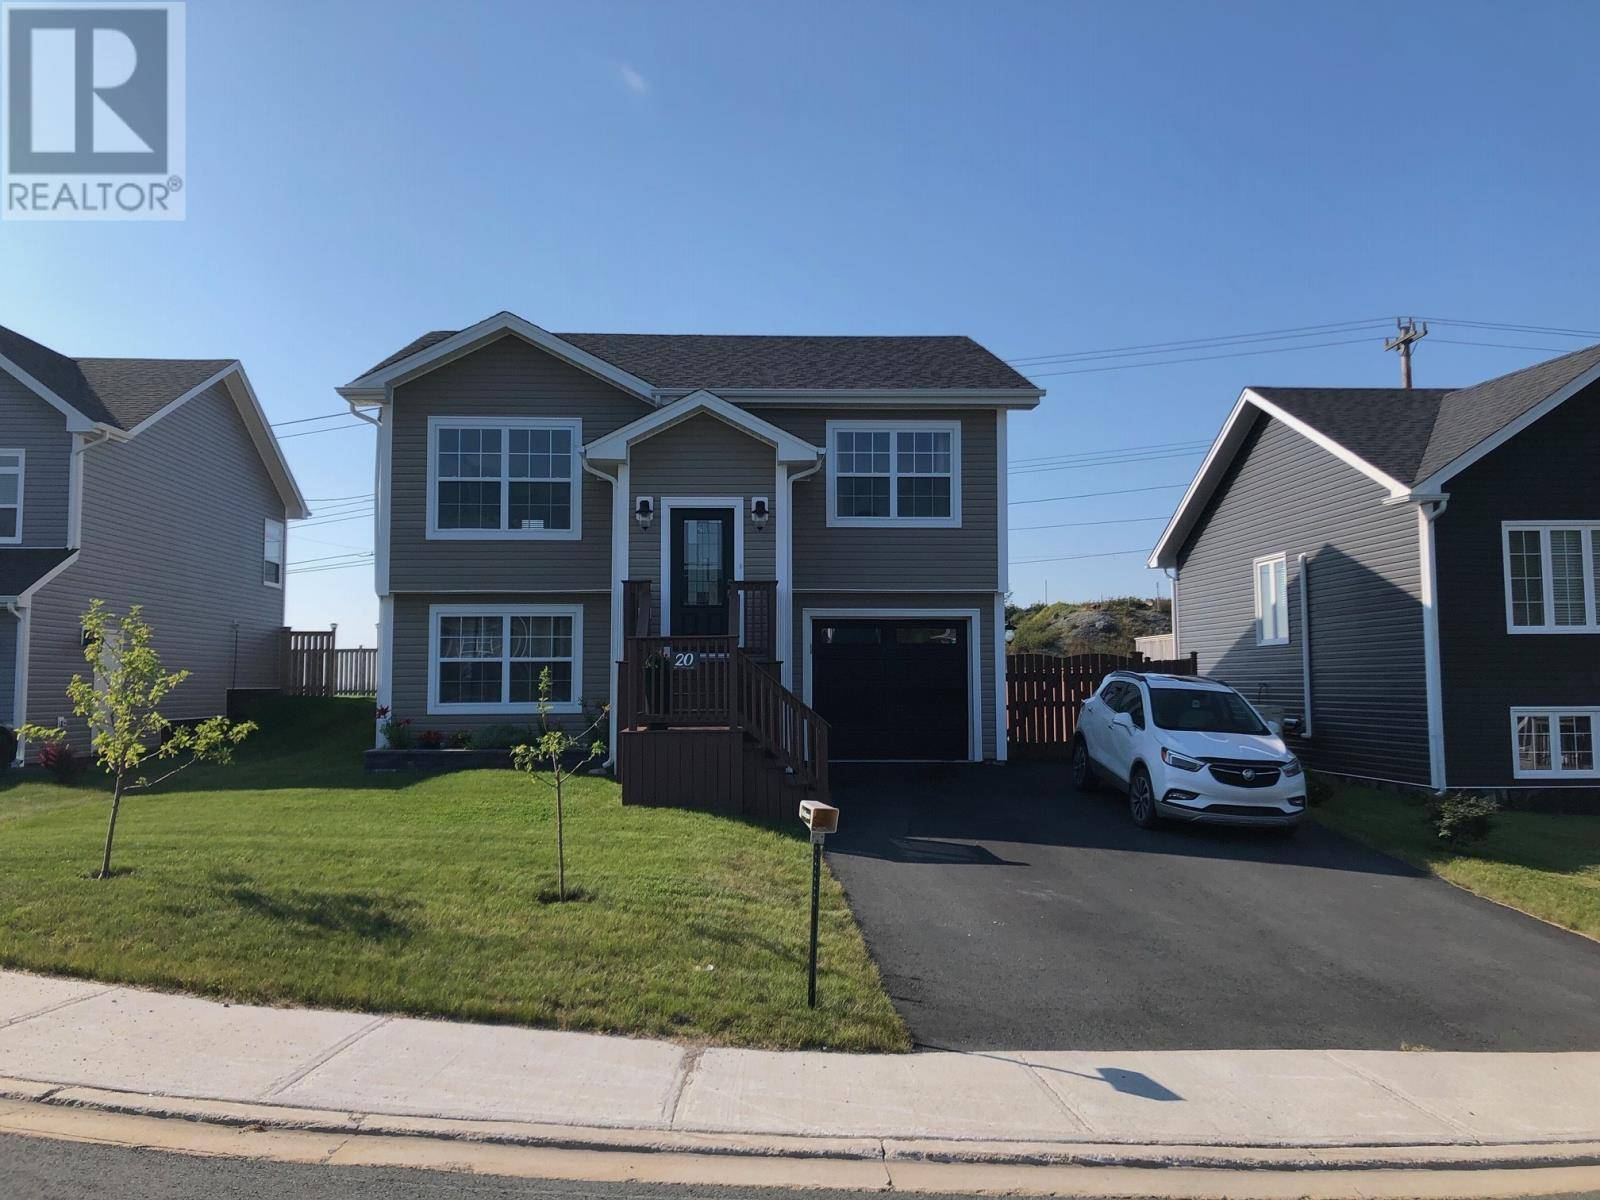 House for sale at 20 Palladium Pl Conception Bay South Newfoundland - MLS: 1212548